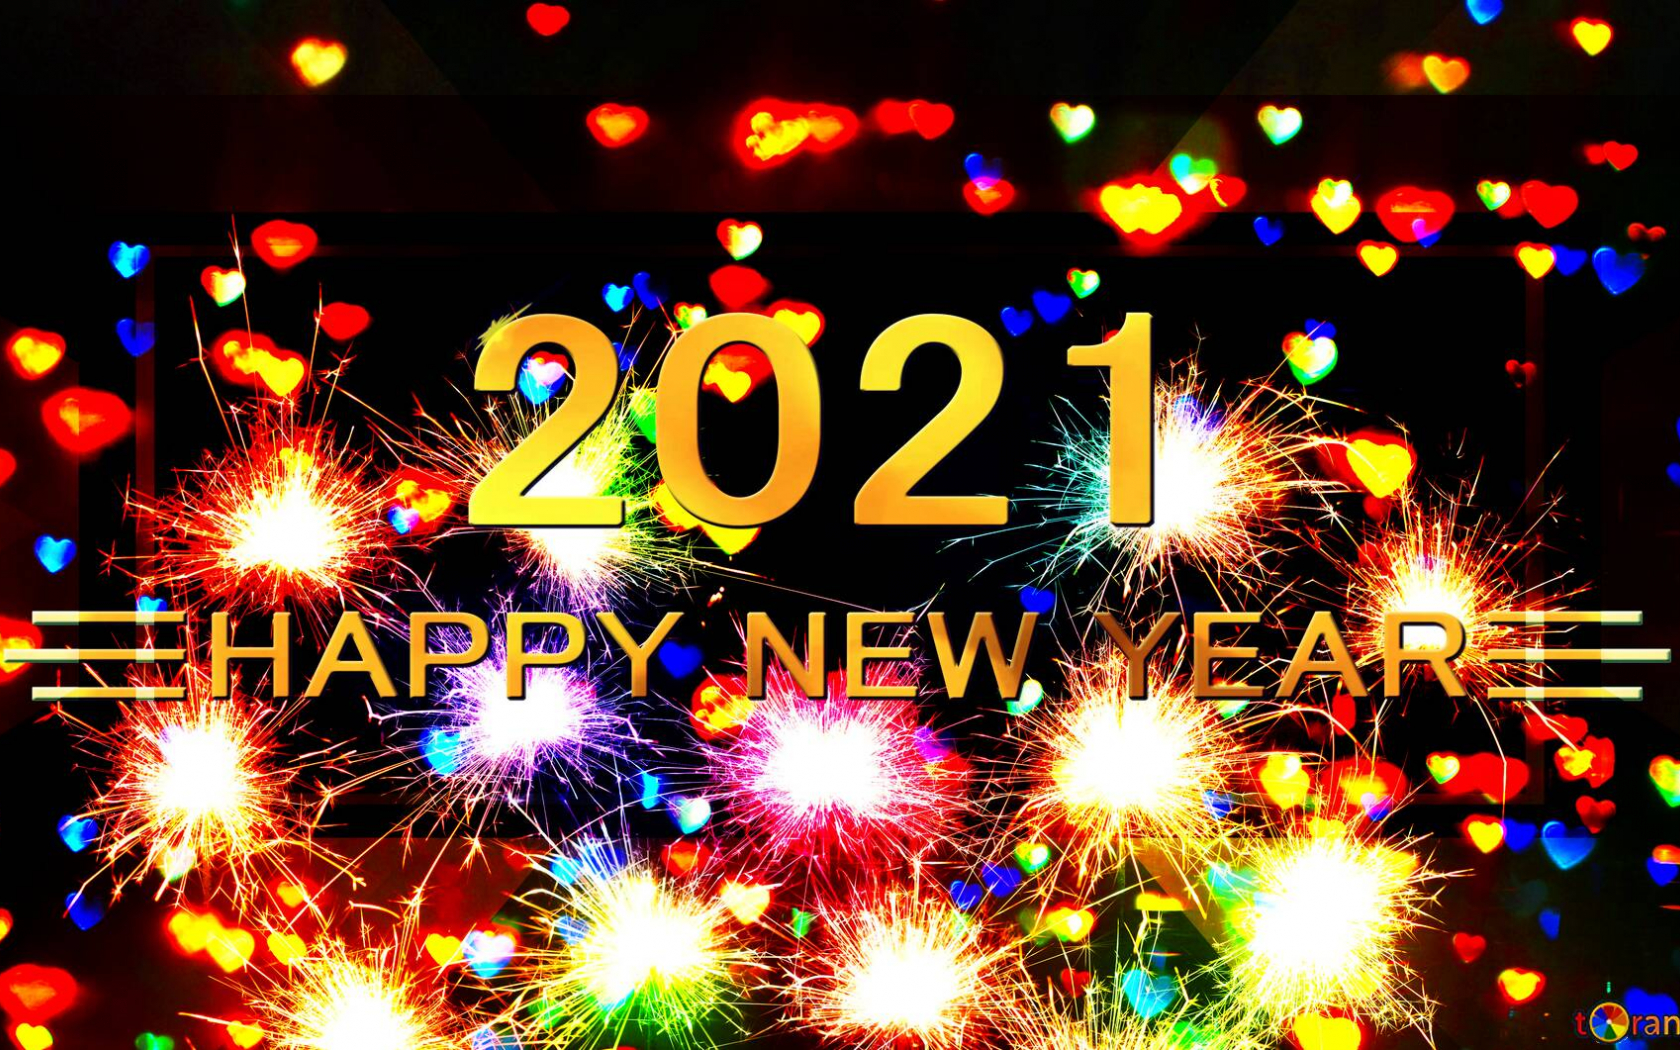 Free Download Happy New Year 2021 Wallpapers 1920x1061 For Your Desktop Mobile Tablet Explore 22 Happy New Year 2021 Wallpapers Happy New Year Wallpaper Happy New Year Backgrounds Happy New Year Wallpapers